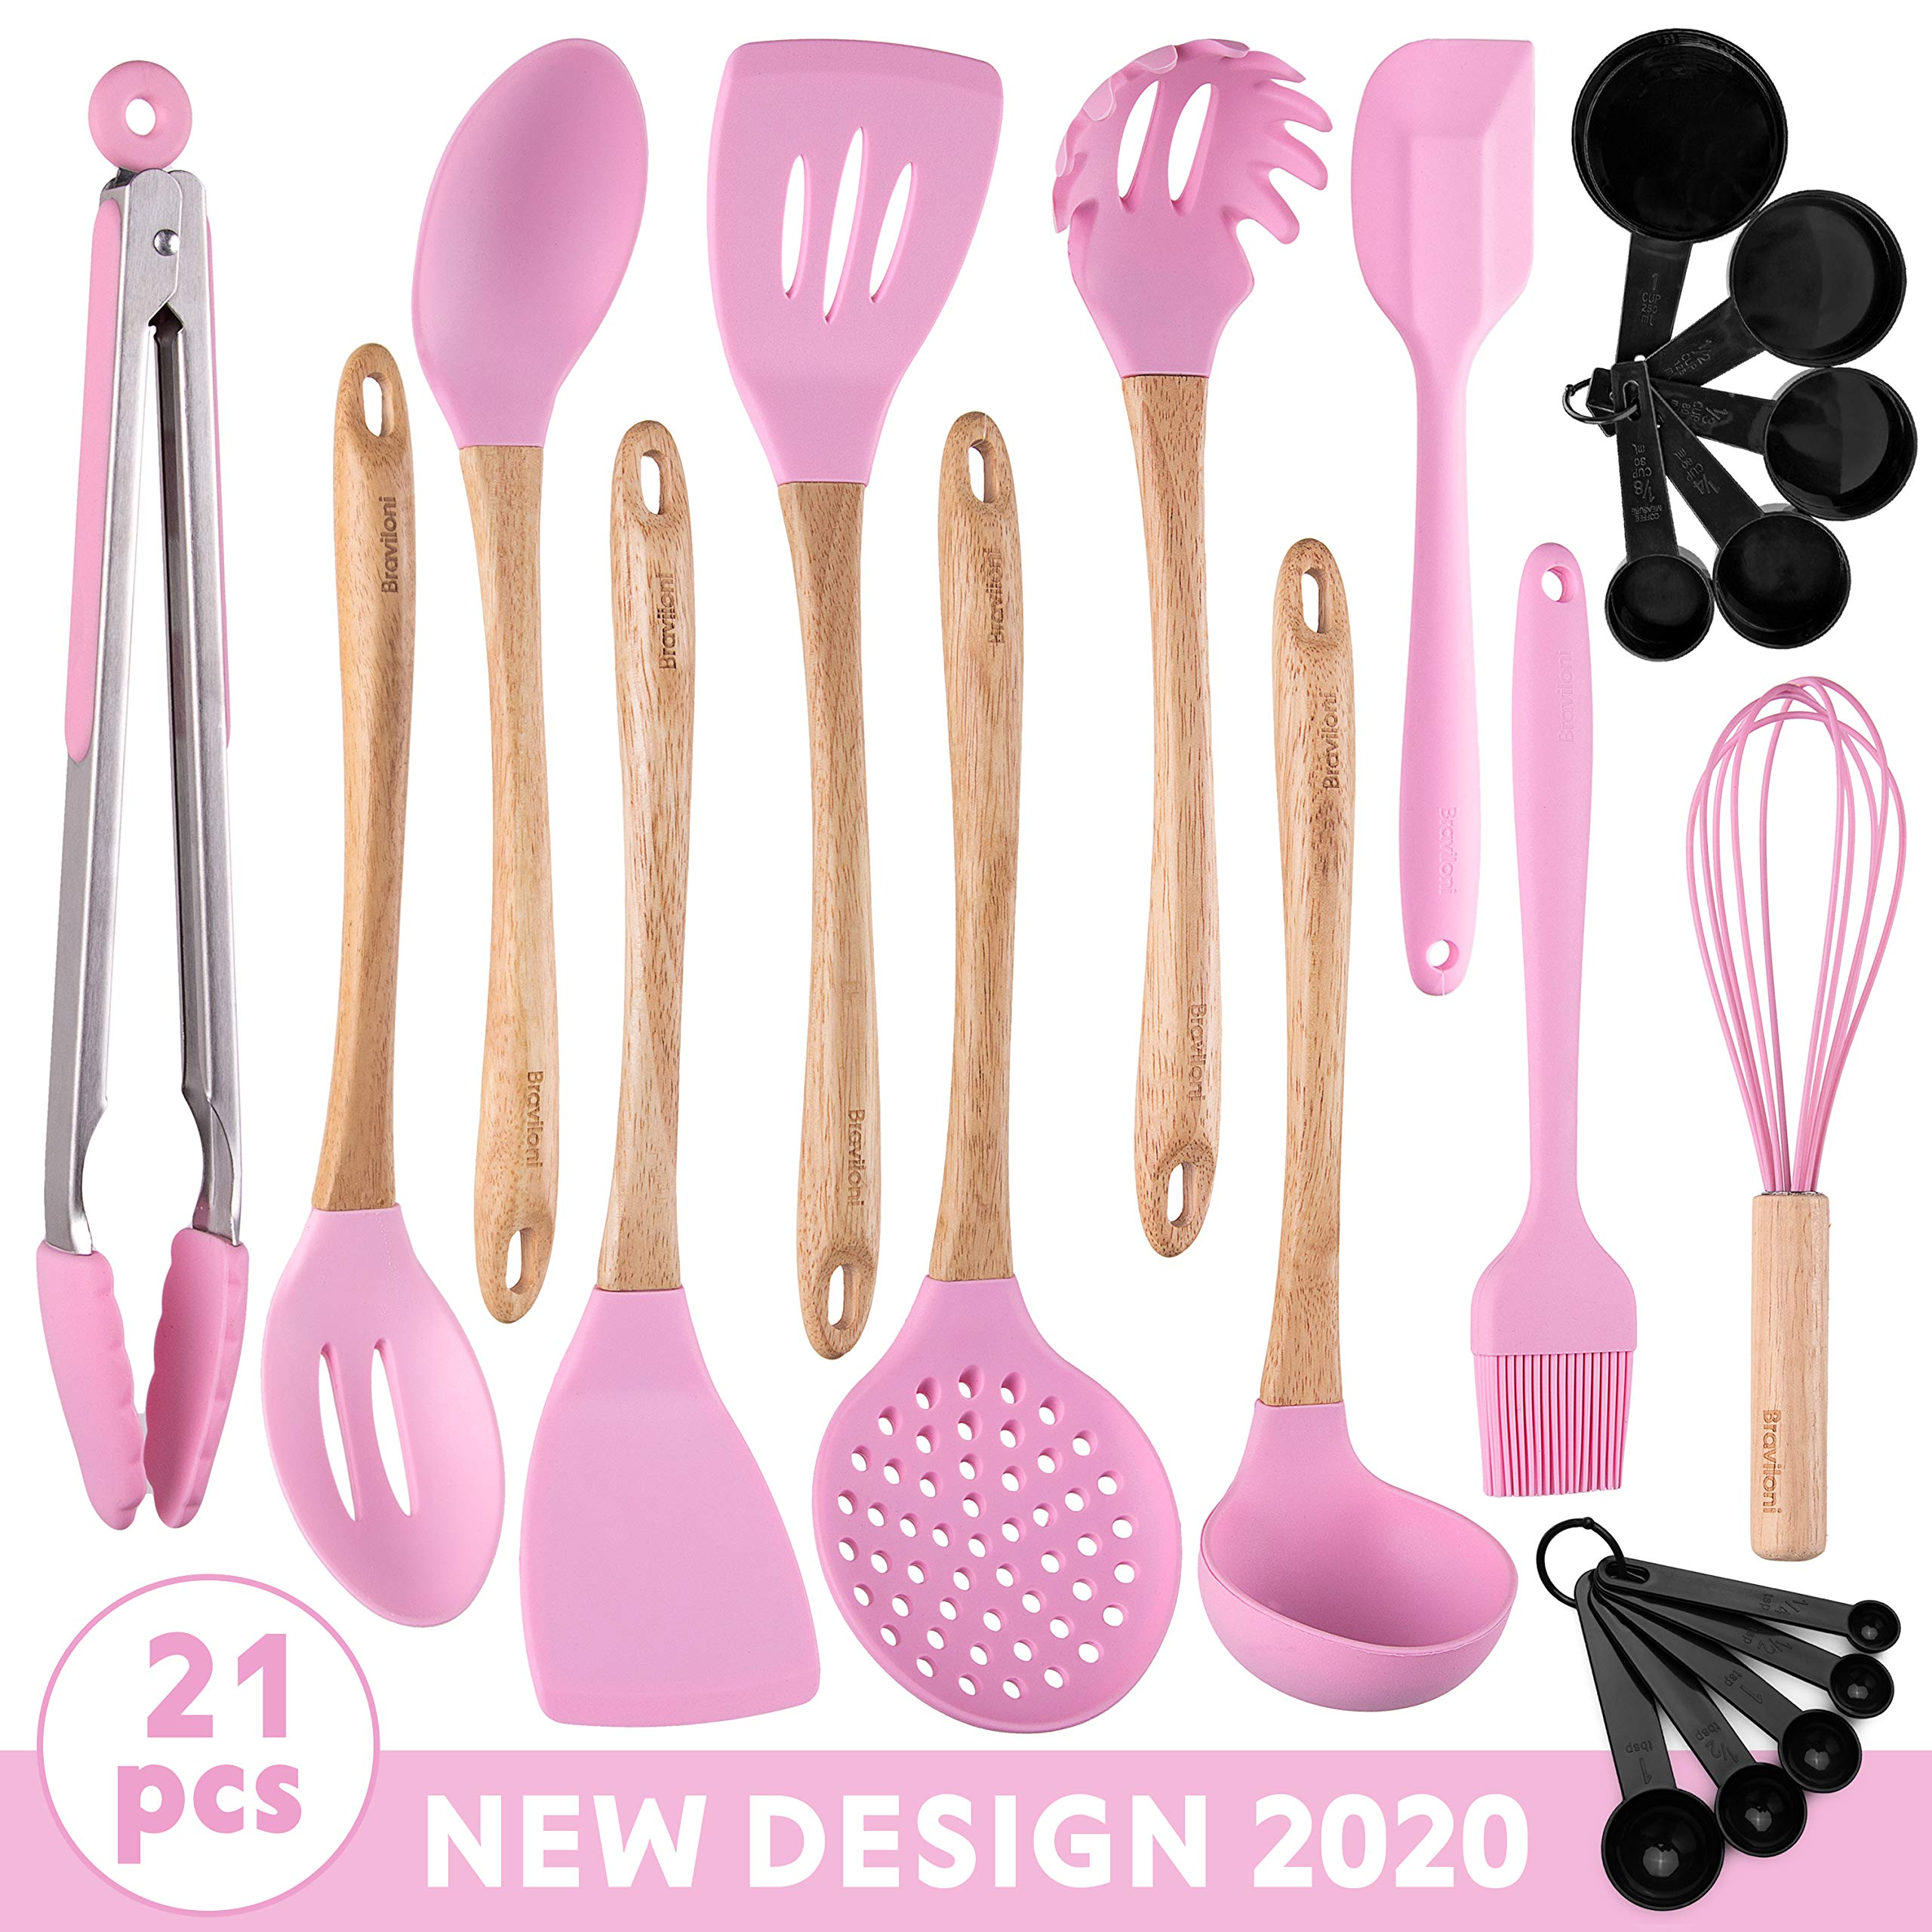 Stylish Kitchen Utensils - 21-Piece New Design Cooking Utensil Set - Wooden Bamboo & Silicone ECO Kit - Ladle, Spatulas, Spoons, Server, Brush, Measuring Cups, Whisk, Strainer, Tongs - Great Gift Idea by Braviloni